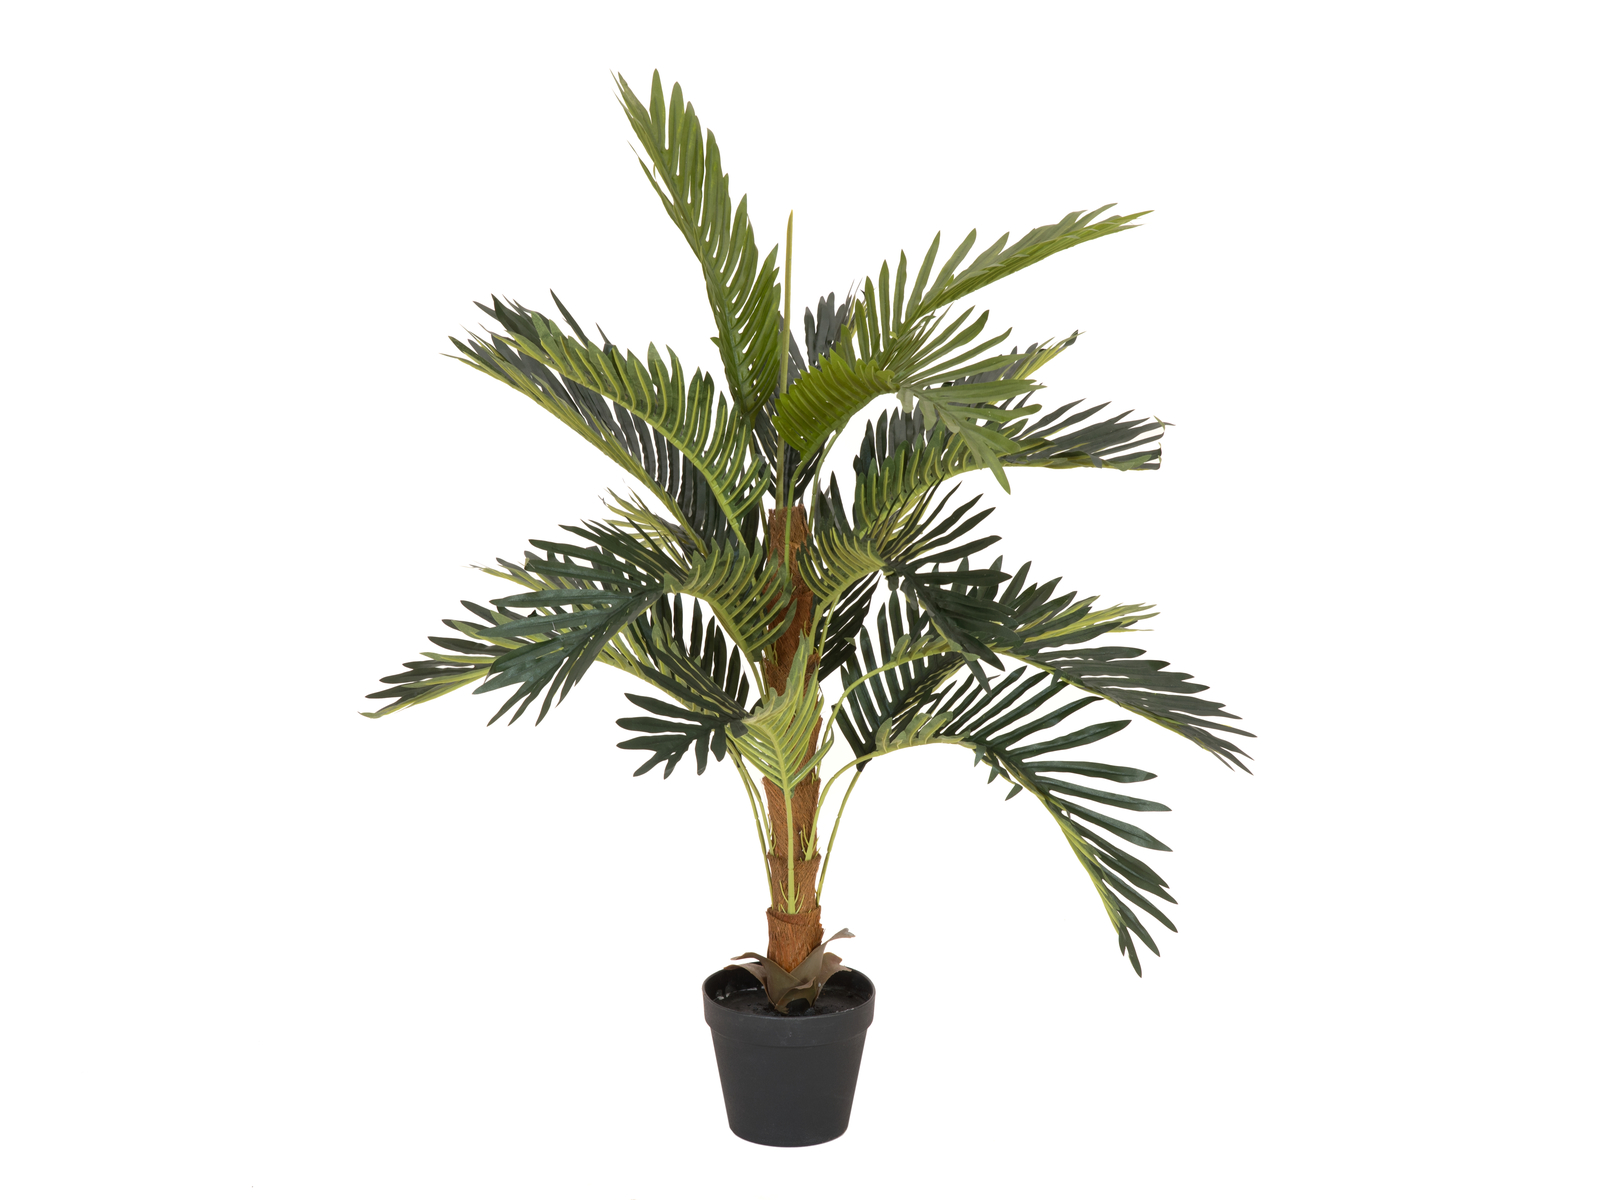 EUROPALMS plant, artificial Coconut palm tree, 90cm